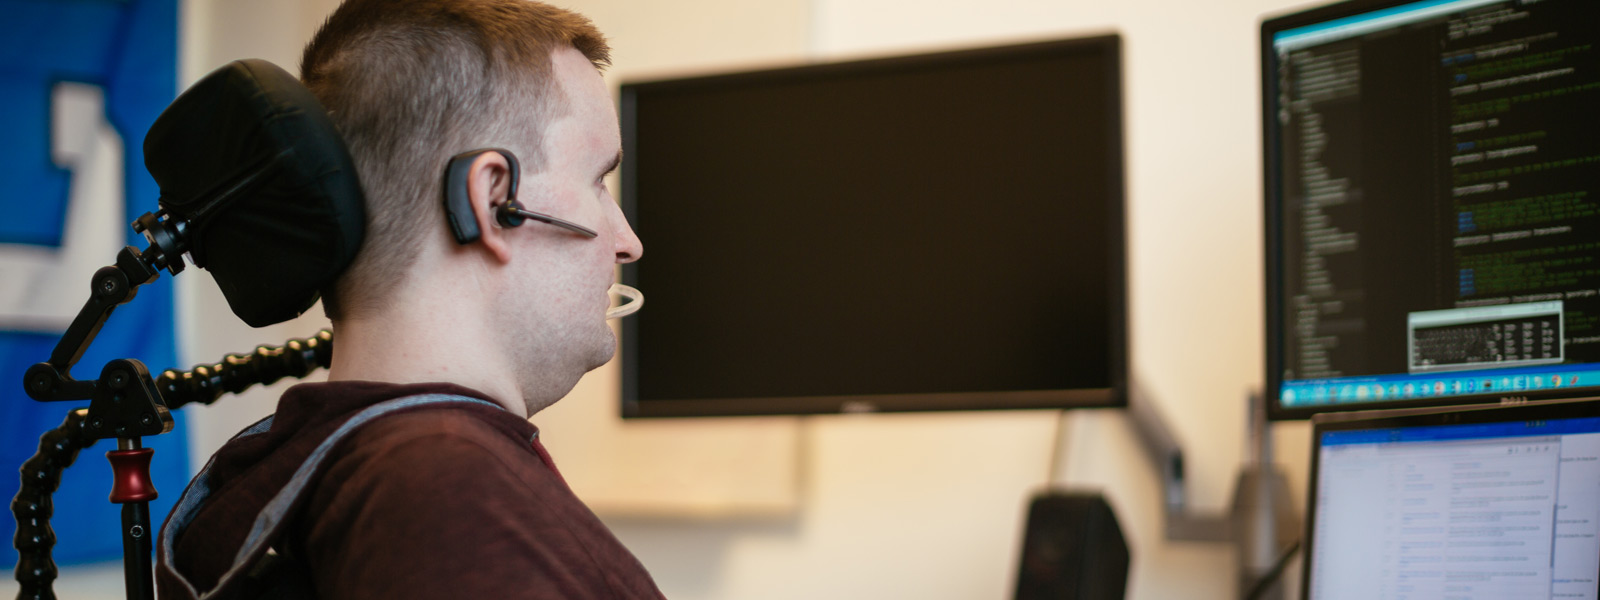 Man at a desk using assistive hardware technology to operate a Windows 10 computer with eye controls